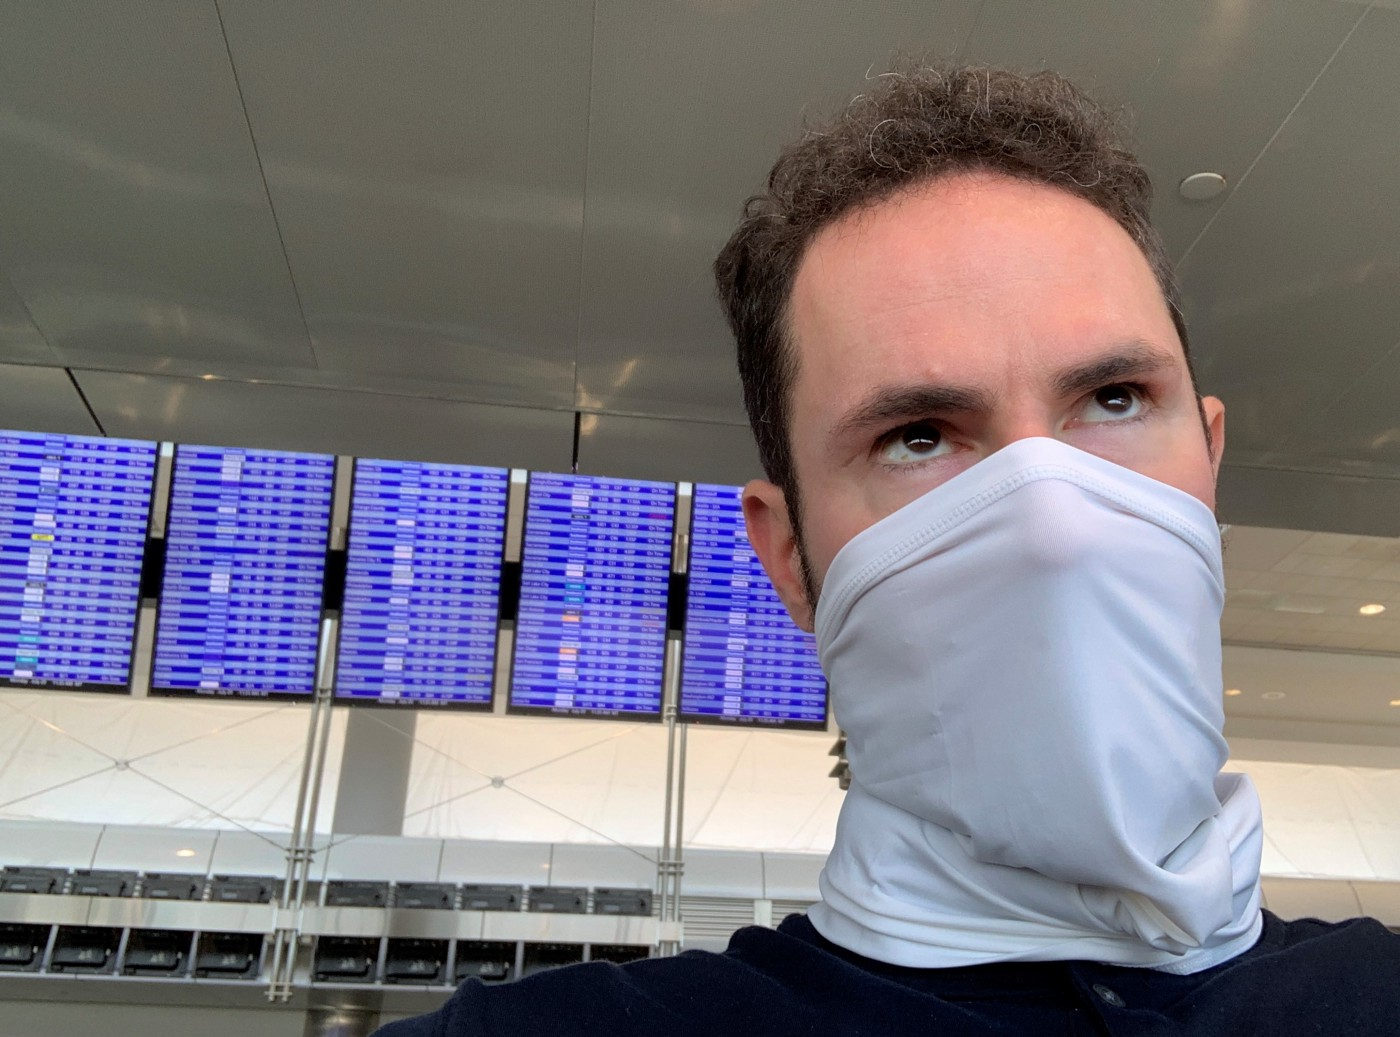 David Bookstaber in an airport wearing a mask